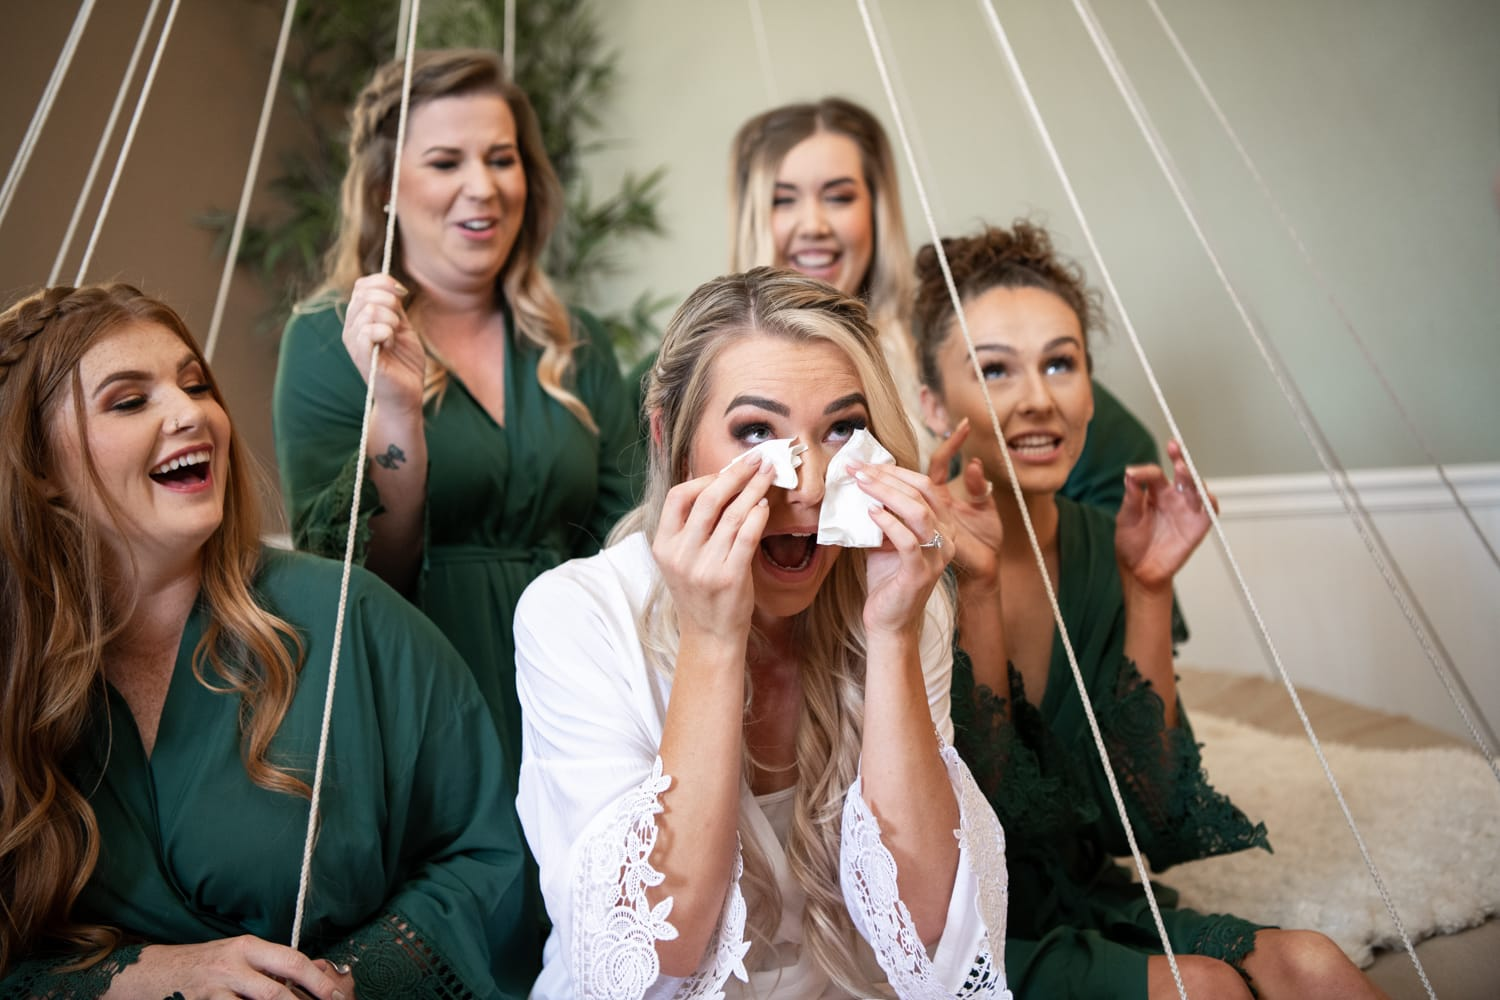 Bride crying with bridesmaids at Ethereal Gardens wedding venue in Escondido.